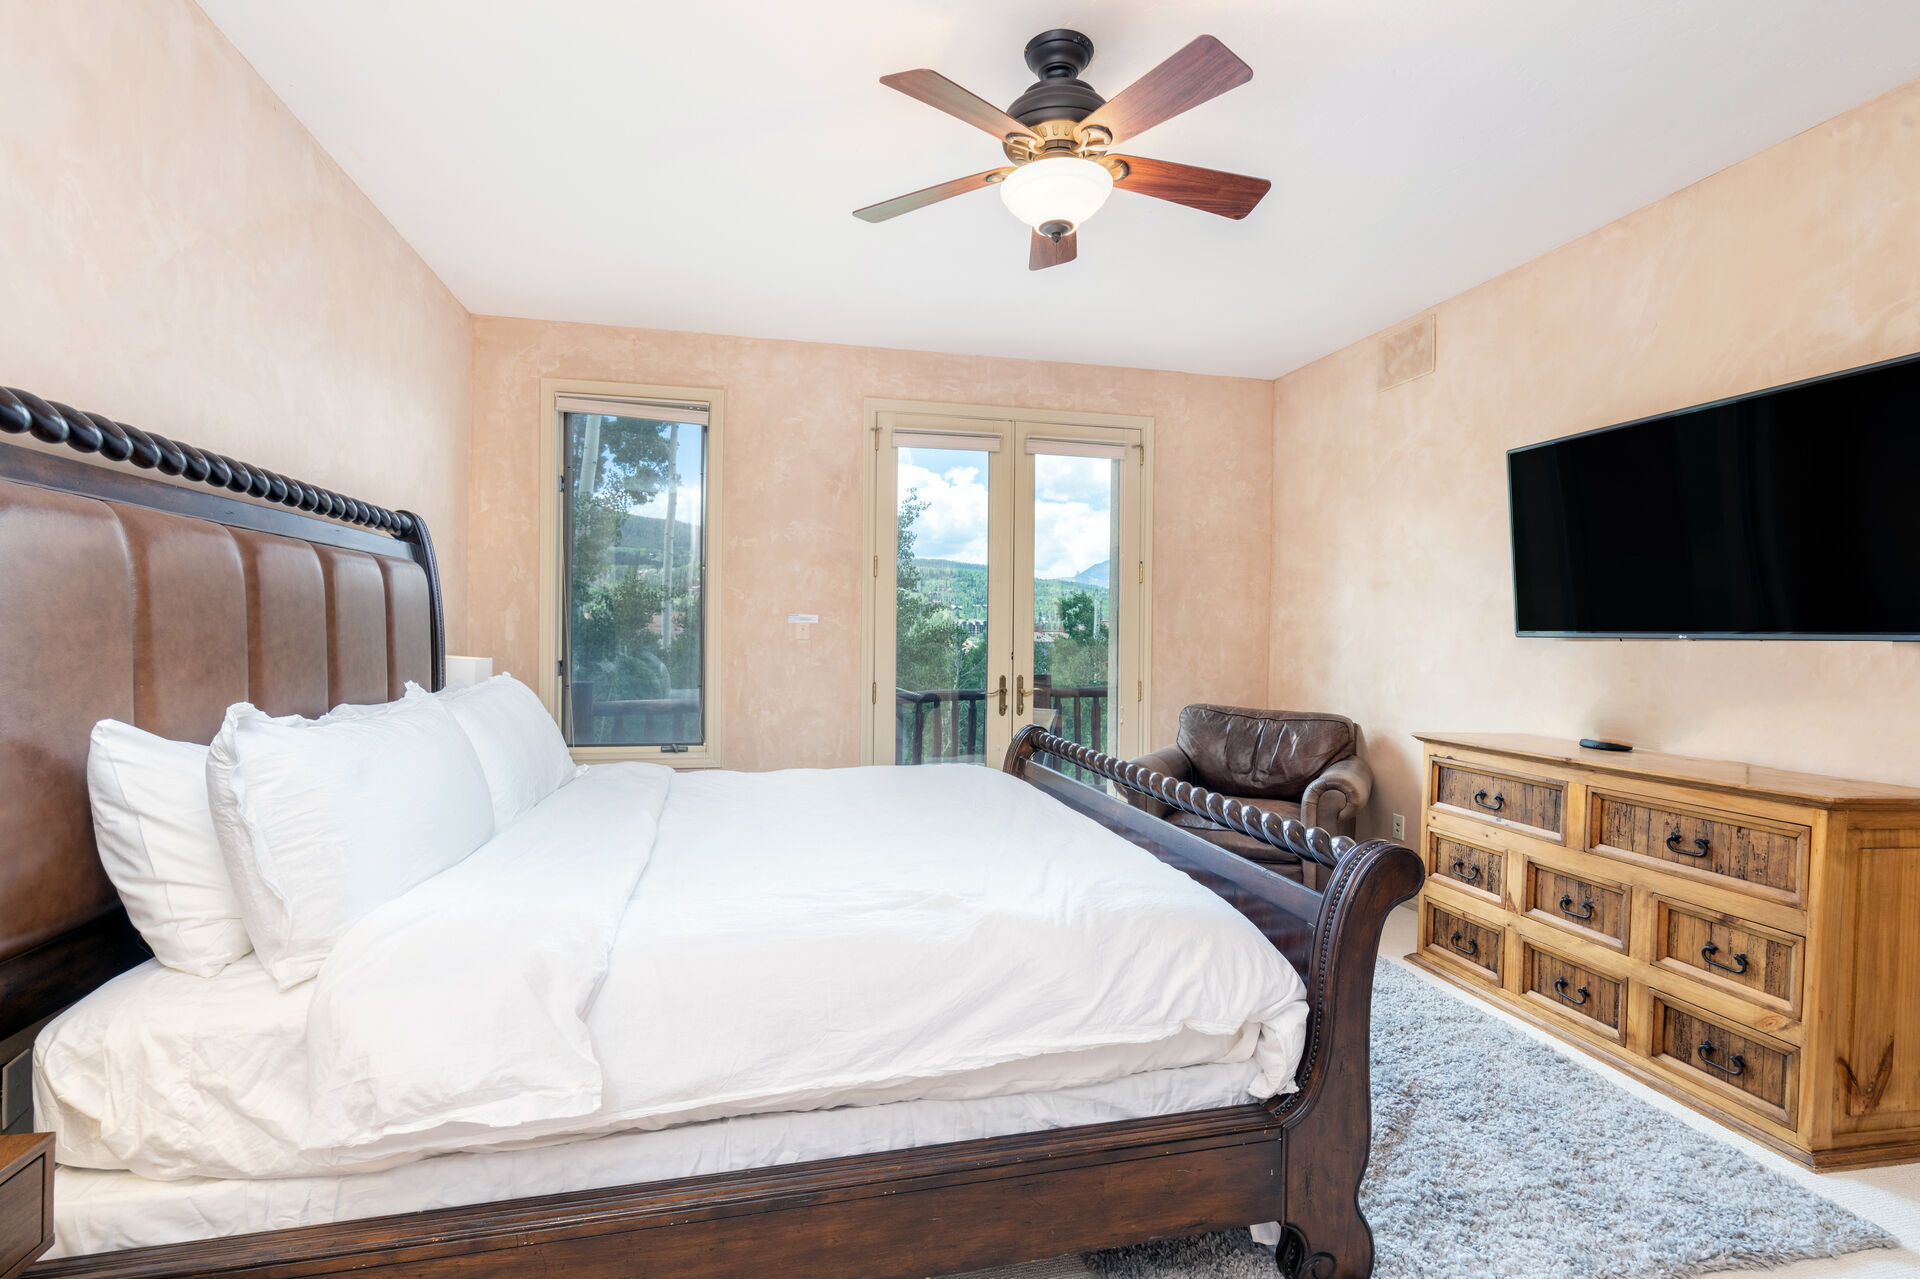 Bedroom with large bed and wood sleigh frame and wood chest of drawers